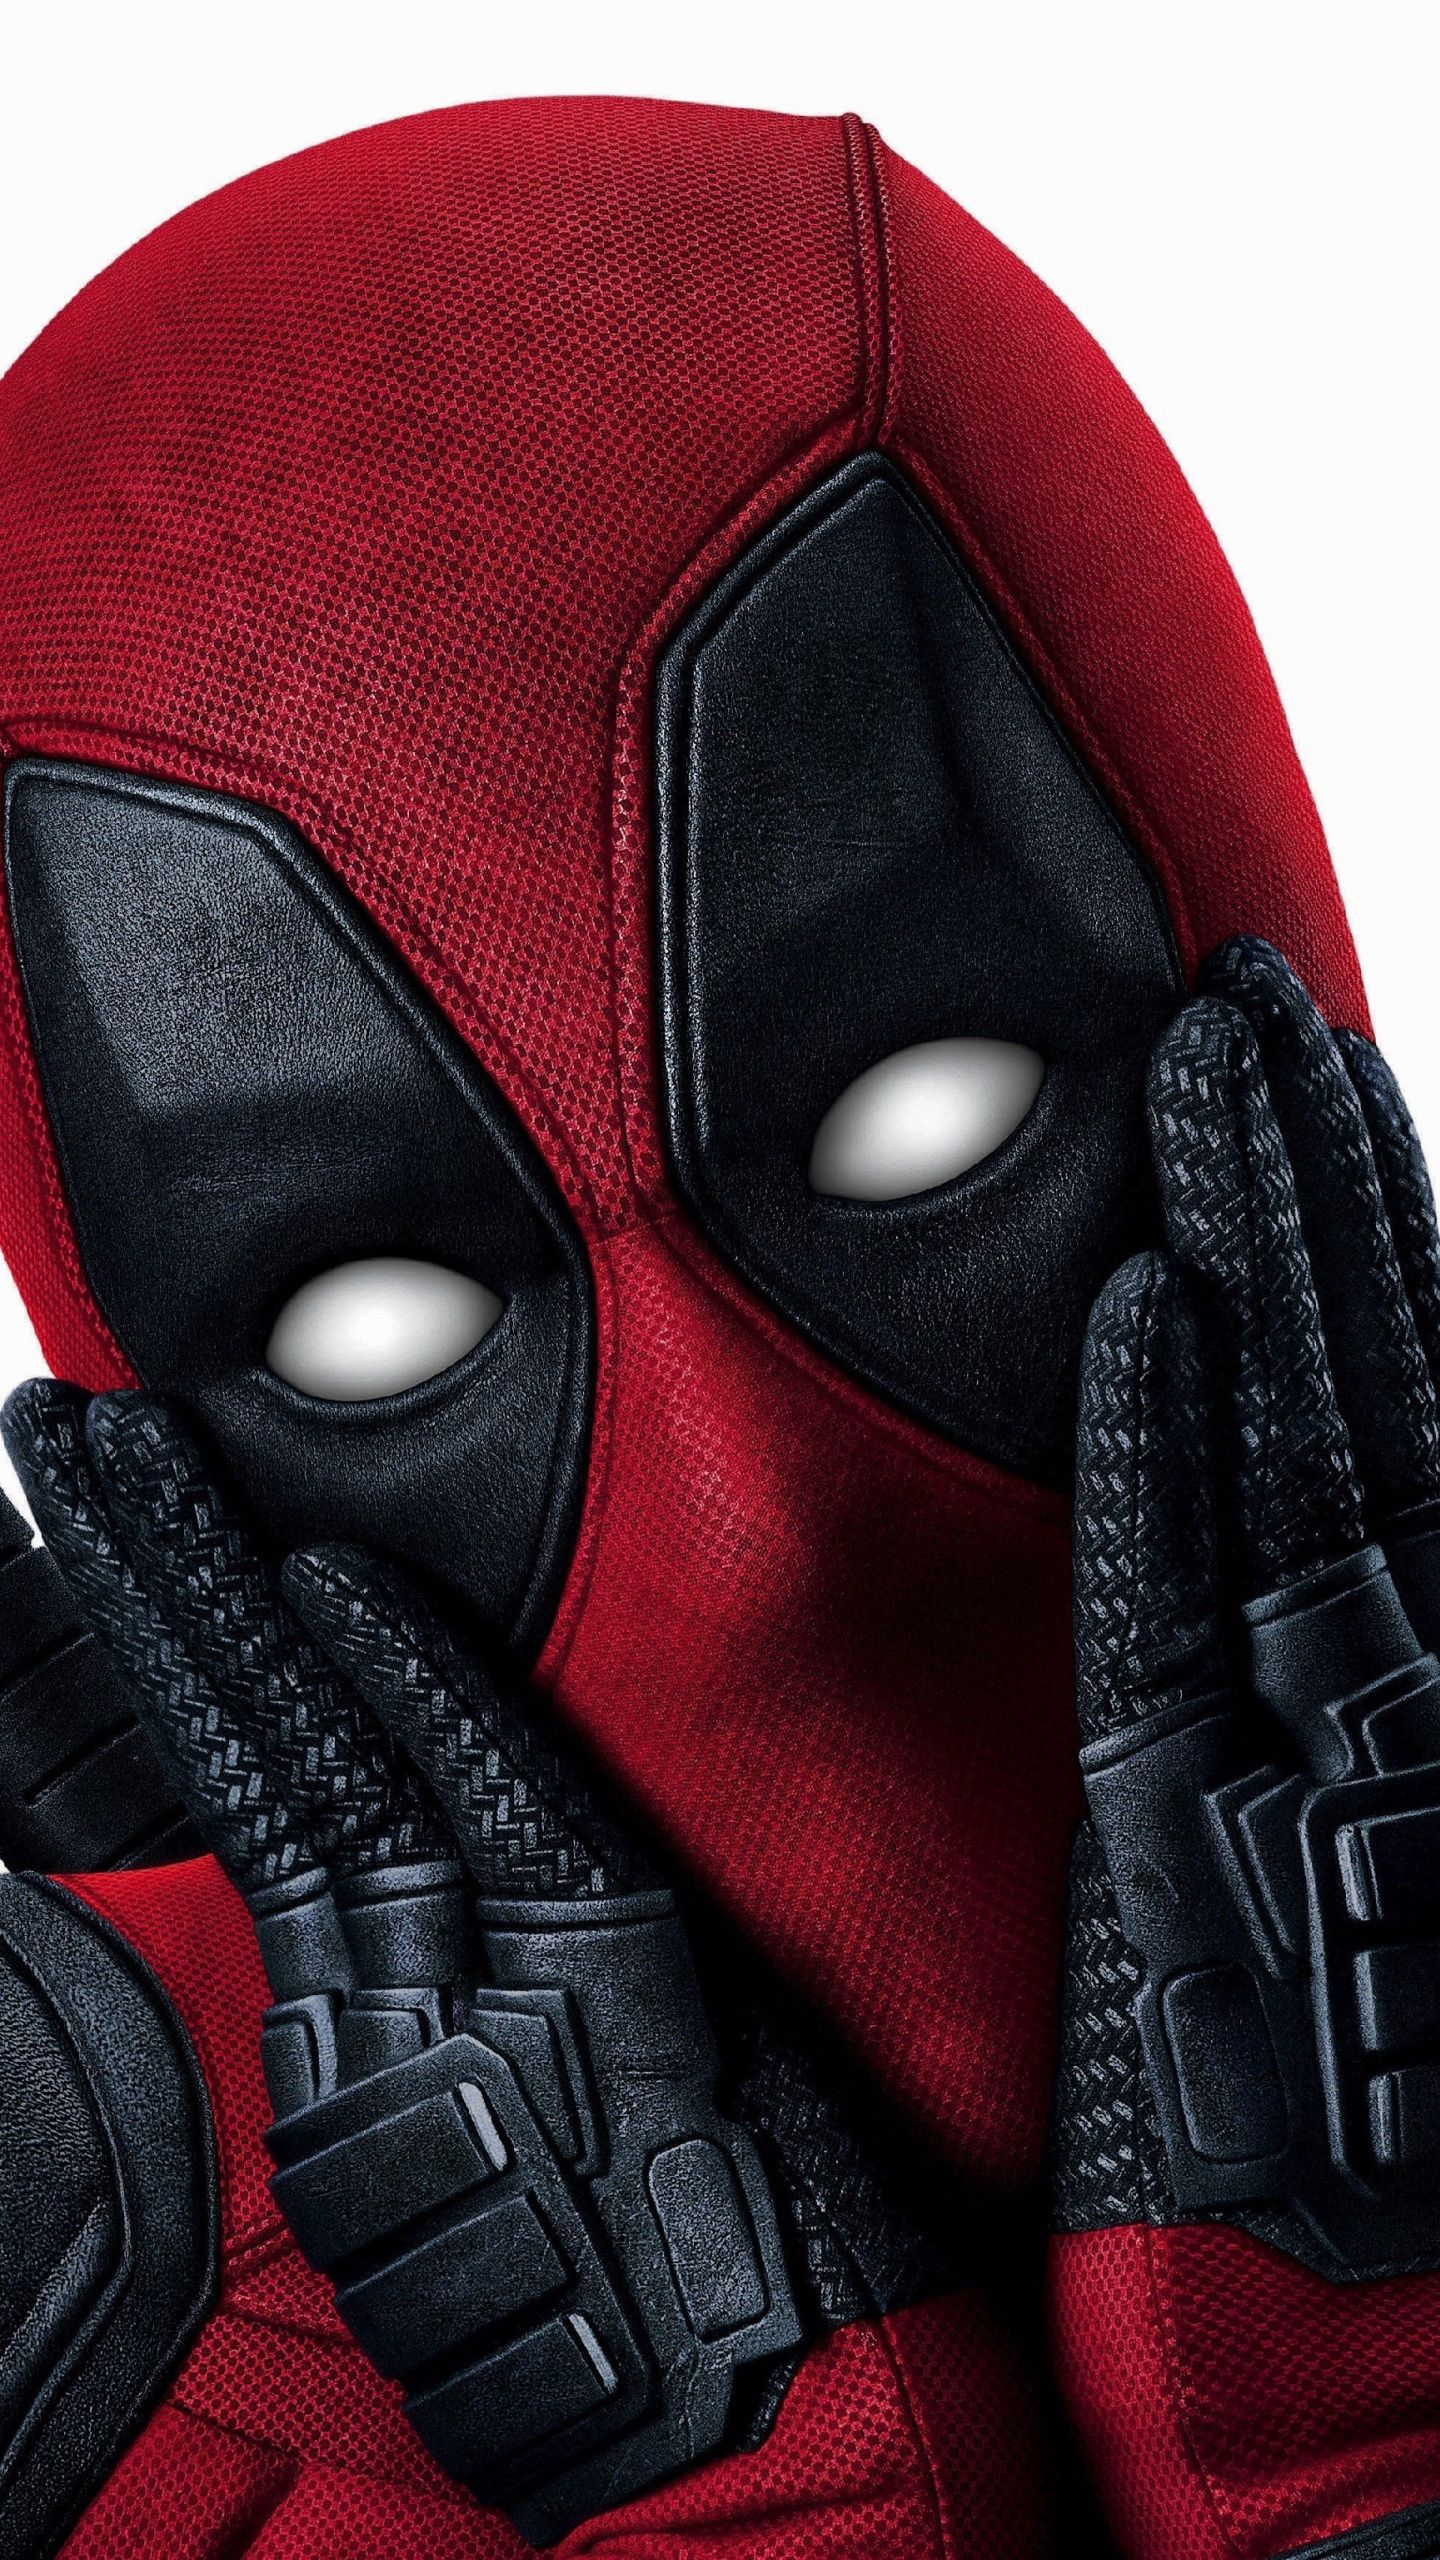 1440x2560 Download 1440x2560 Wallpaper Deadpool 2, Movie, Superhero, 2018 ...